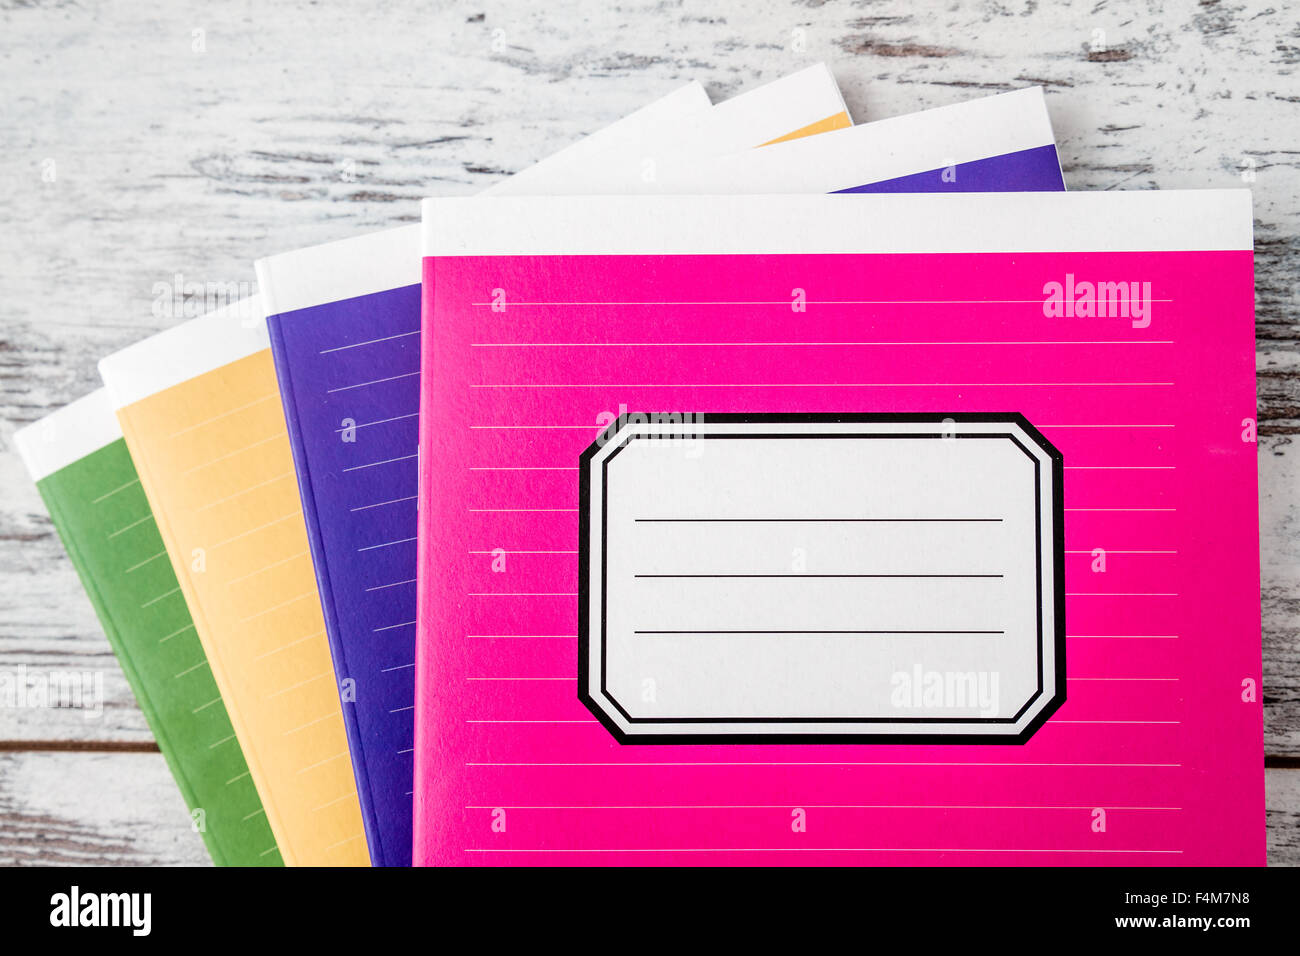 082234c34316 Colorful notebooks with name label on cover on white wooden background -  Stock Image